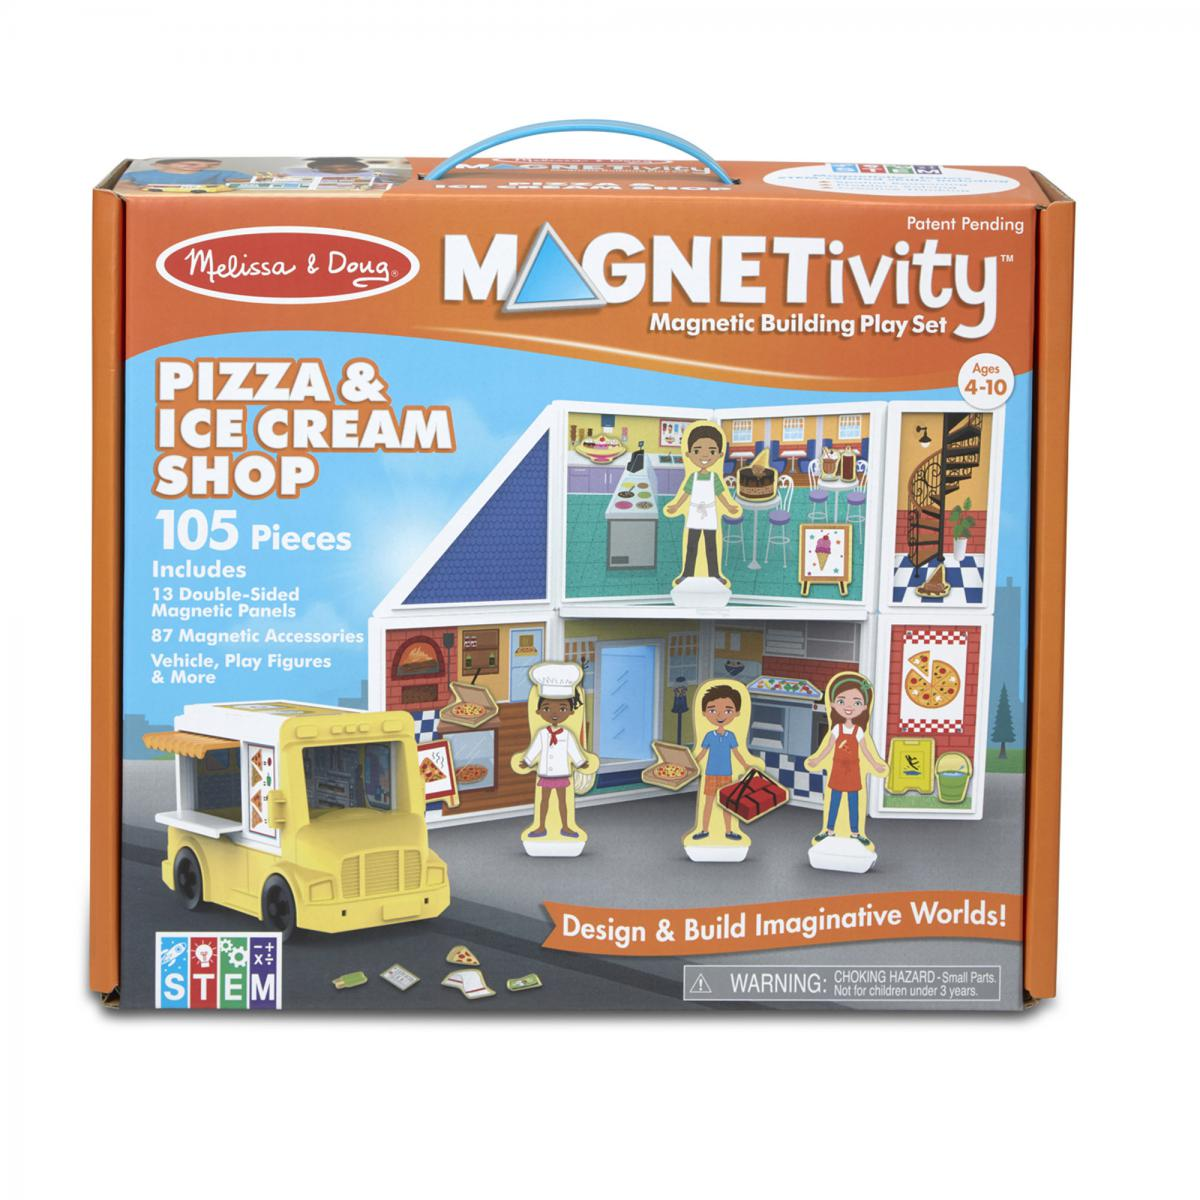 Magnetivity Magnetic Building Play Set: Pizza & Ice Cream Shop